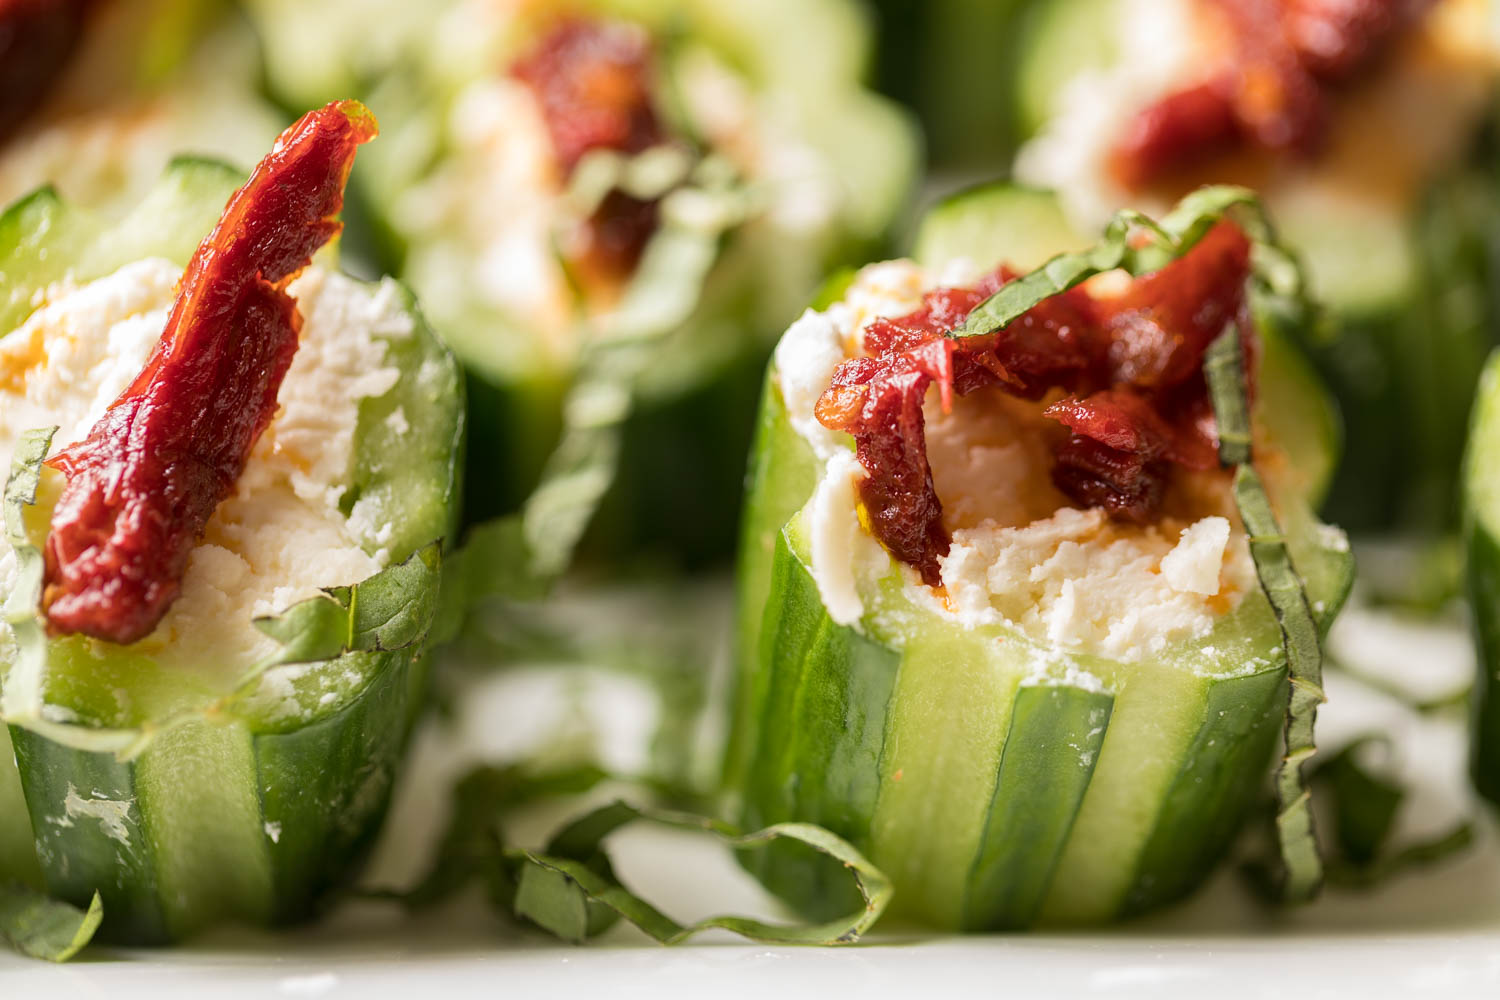 Bacon & Cucumber hor d'oeuvres